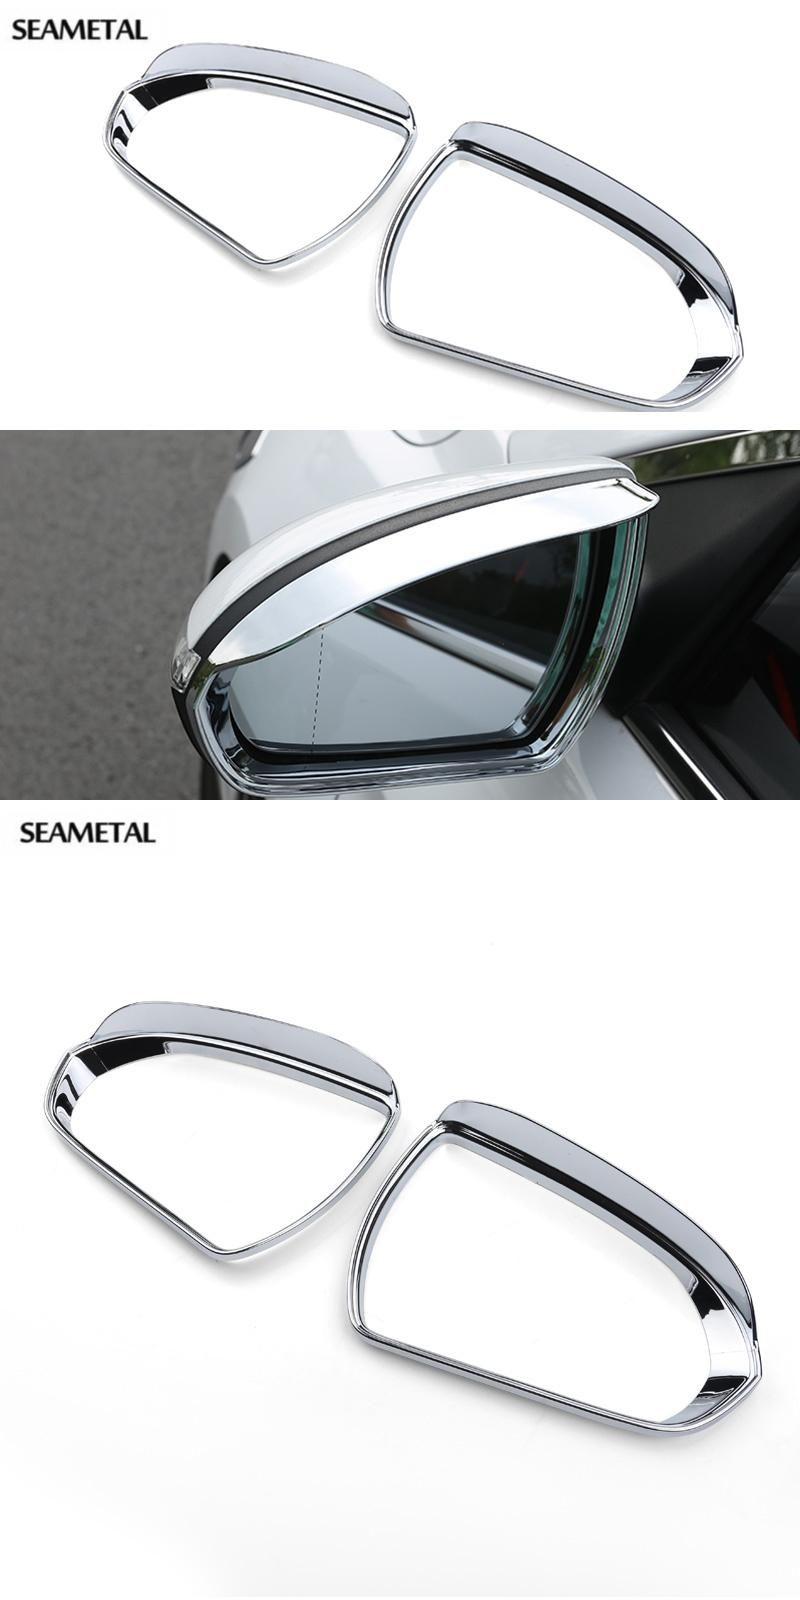 2015 hyundai sonata pricing options and specifications cleanmpg -  Visit To Buy For Hyundai Elantra Ad 2016 2017 Car Rearview Mirror Frame Cover